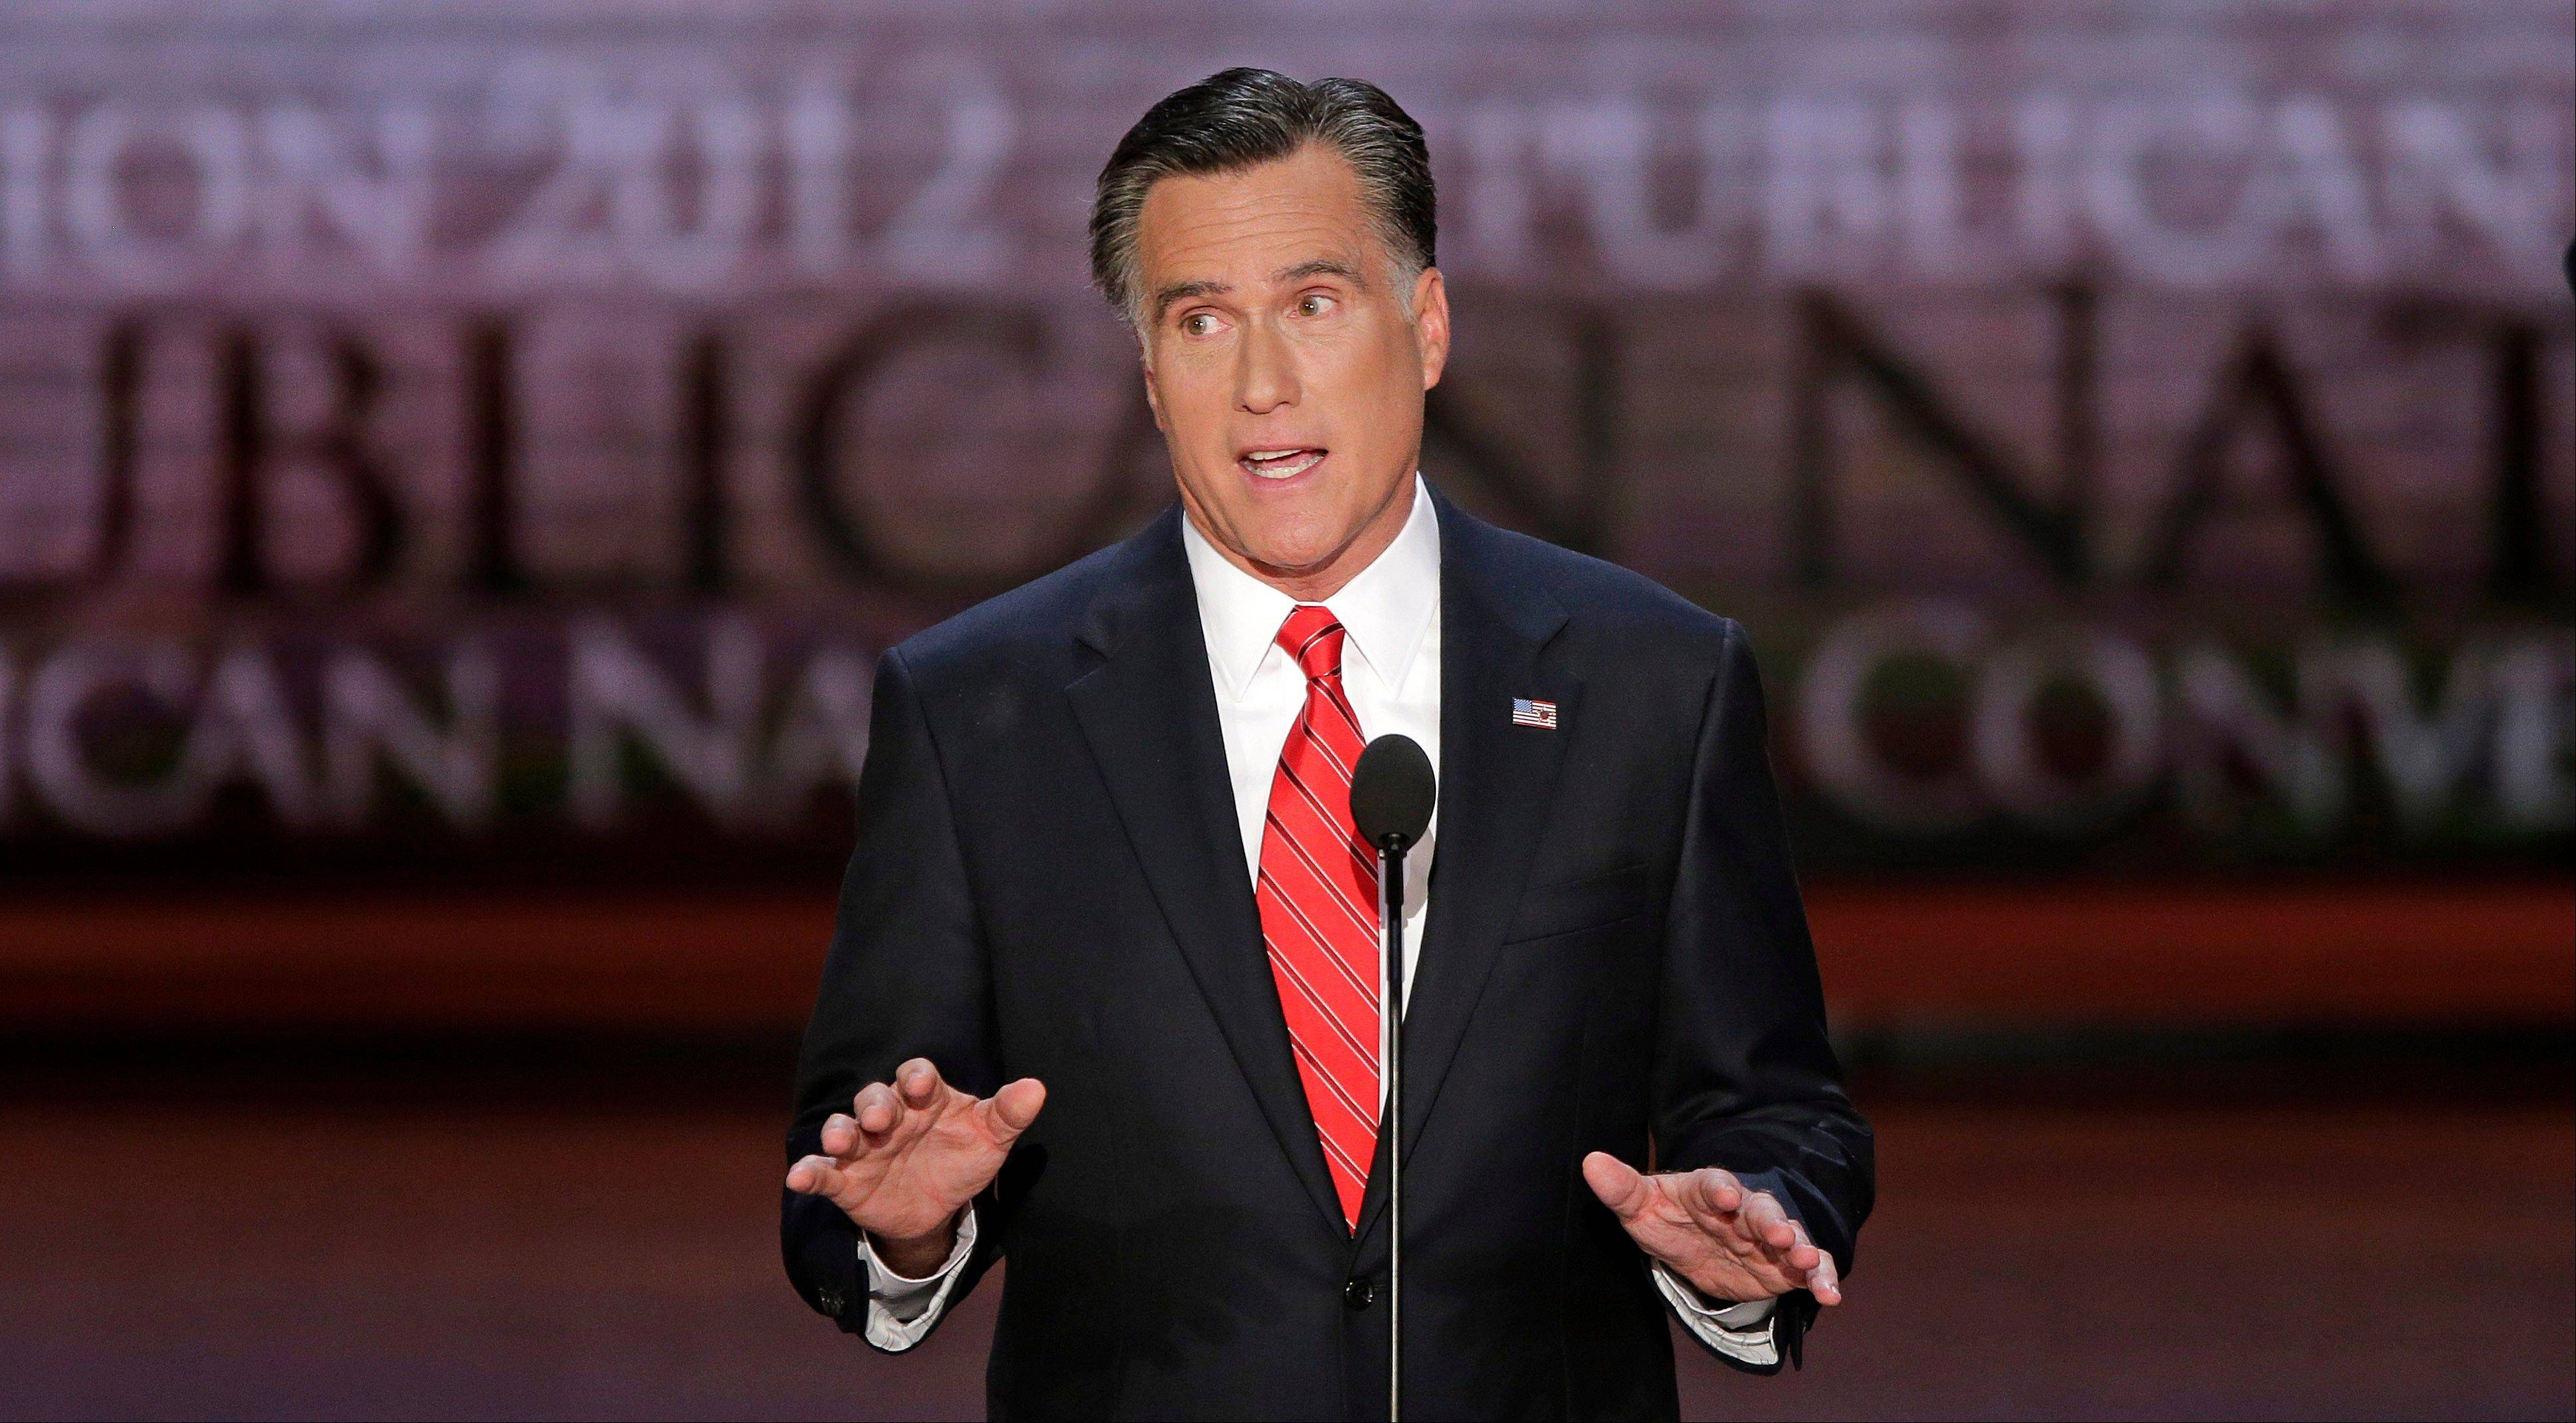 Republican presidential nominee Mitt Romney addresses the Republican National Convention in Tampa, Fla., on Thursday, Aug. 30, 2012.